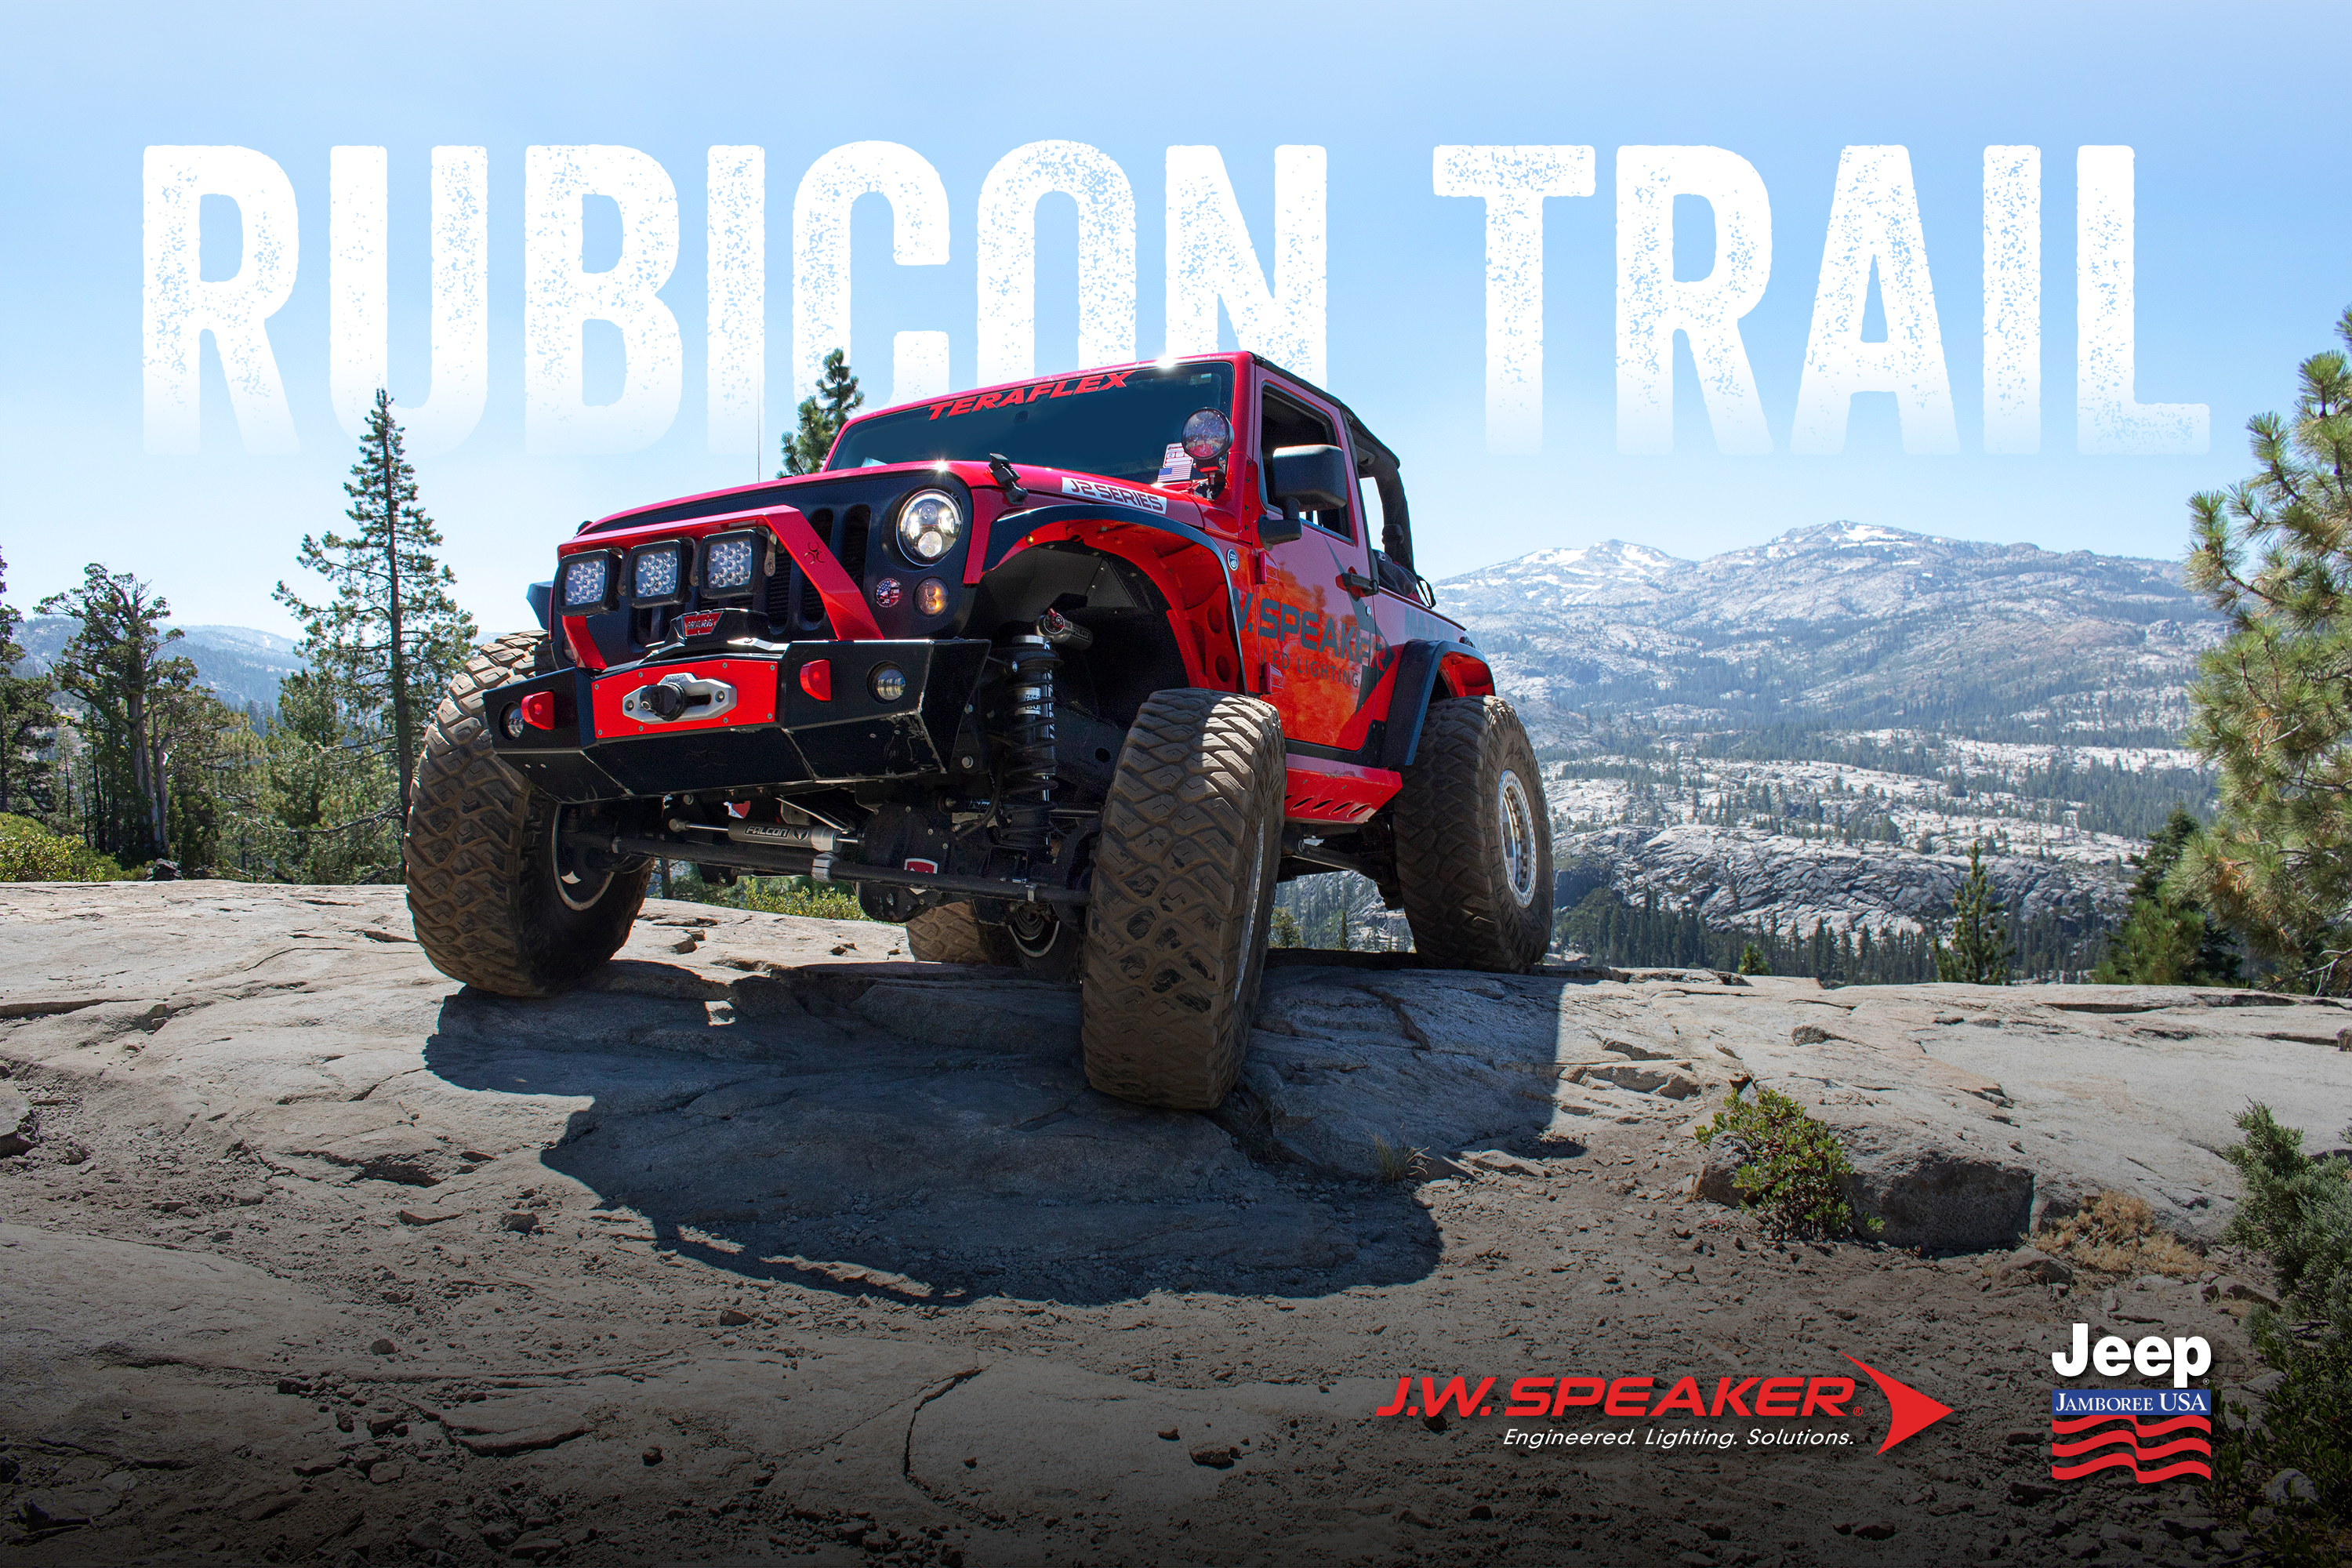 J.W. Speaker Jeep Rubicon Trail